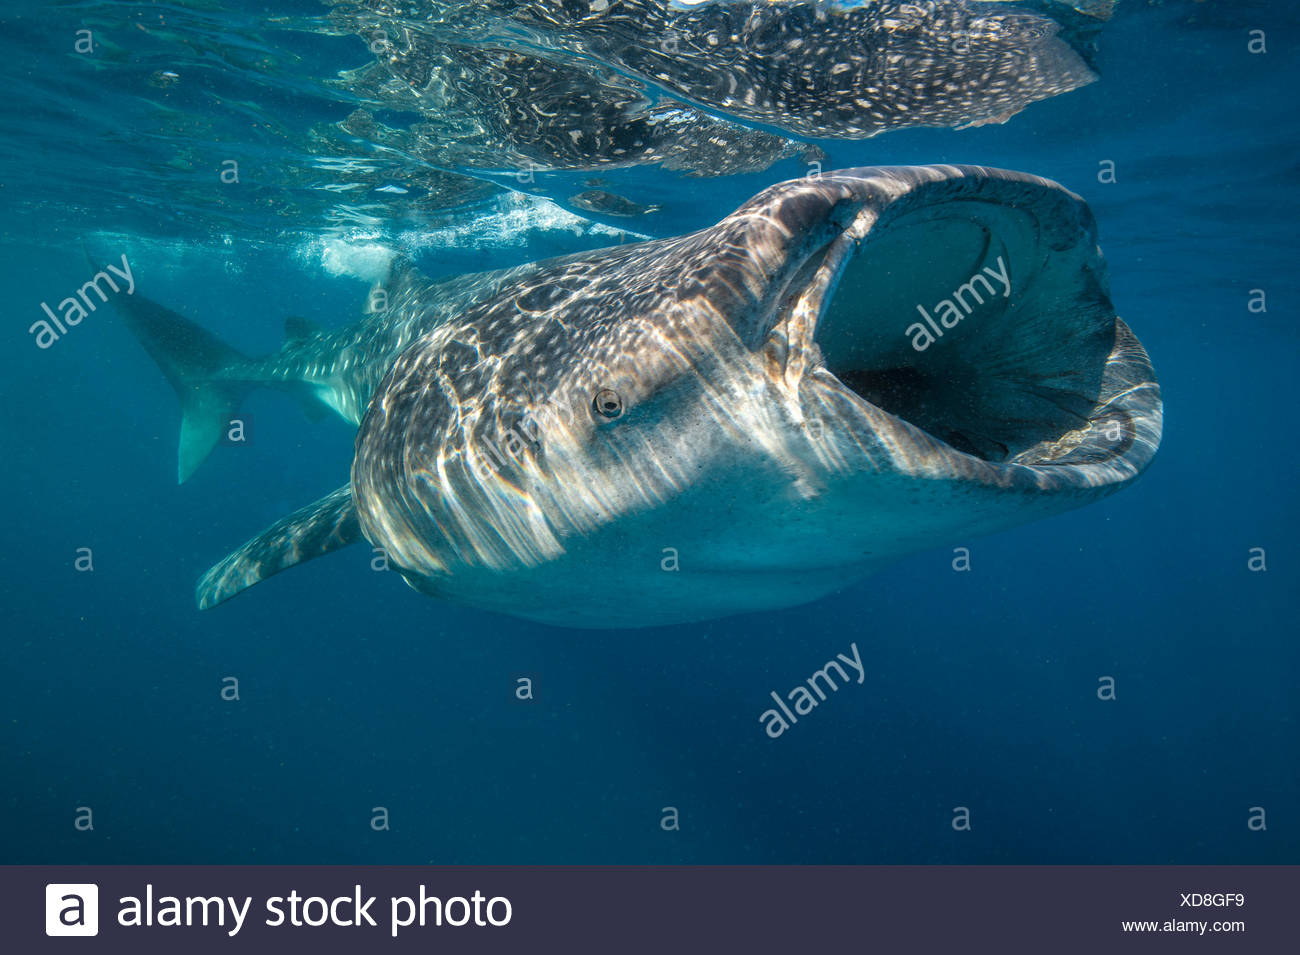 Whale shark (Rhincodon typus) mouth open filter feeding at the surface, Quintana Roo, Yucatan Peninsular, Mexico, Caribbean Sea. - Stock Image